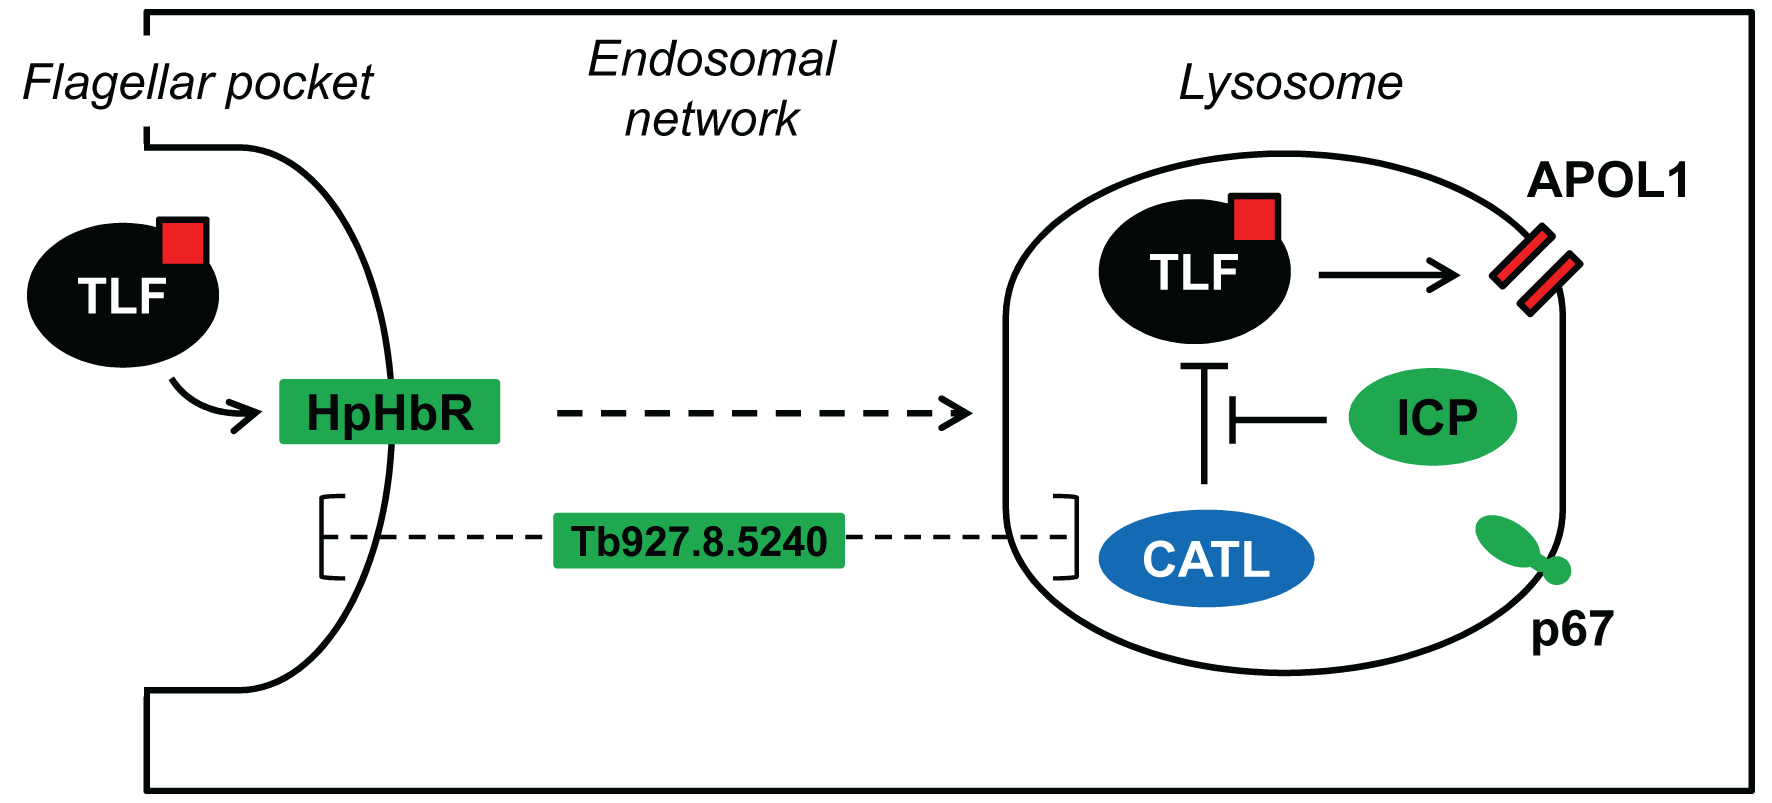 Model showing the proposed interactions among ICP, CATL and TLF.